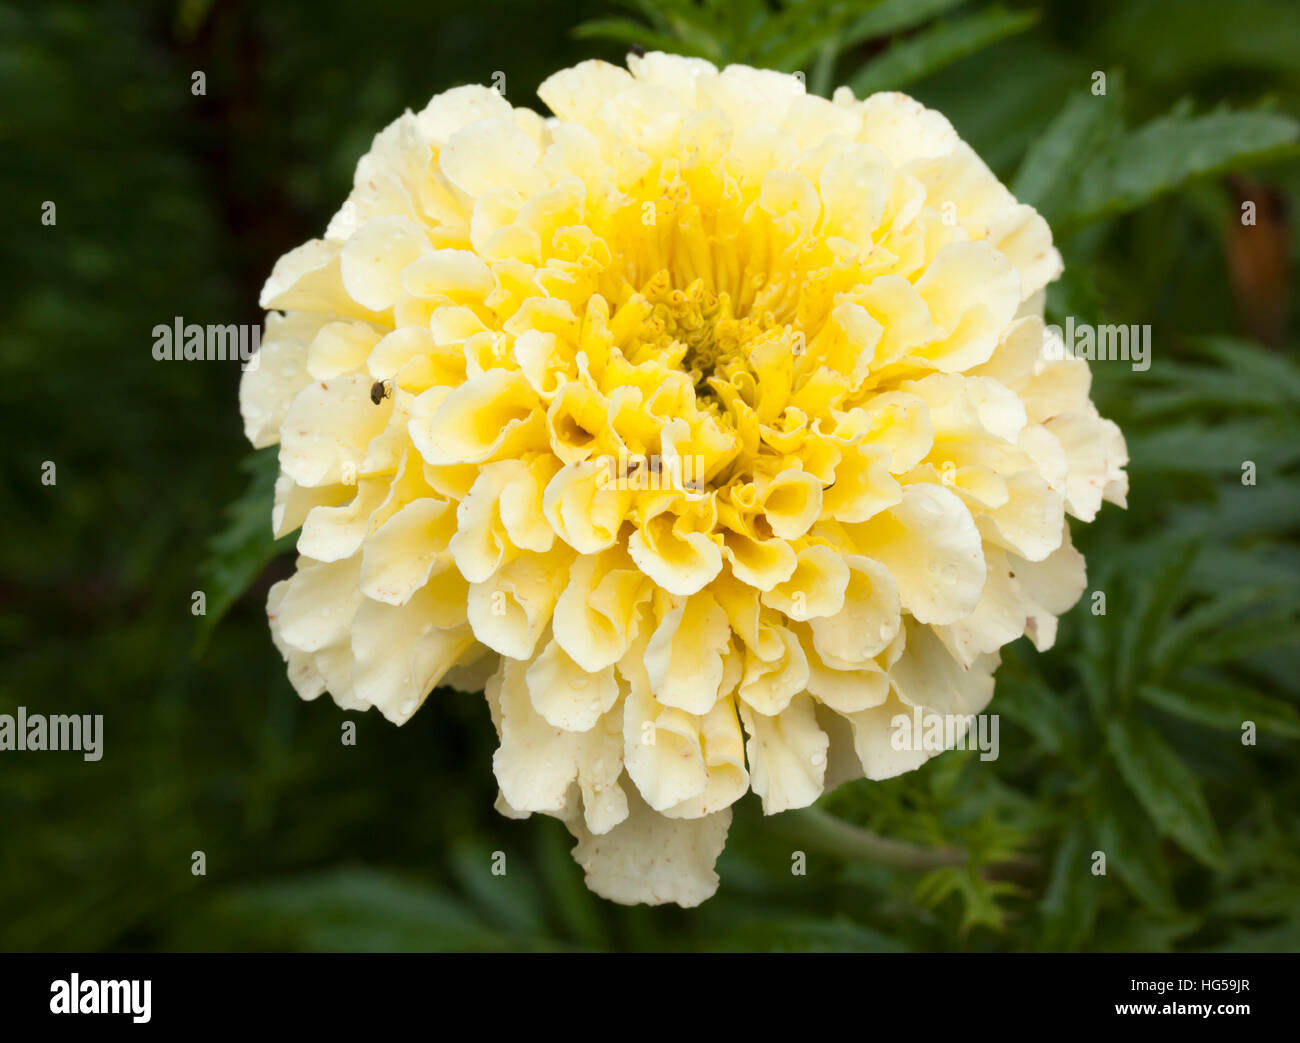 Flower Of White Marigold Large Close Up Macro Stock Photo